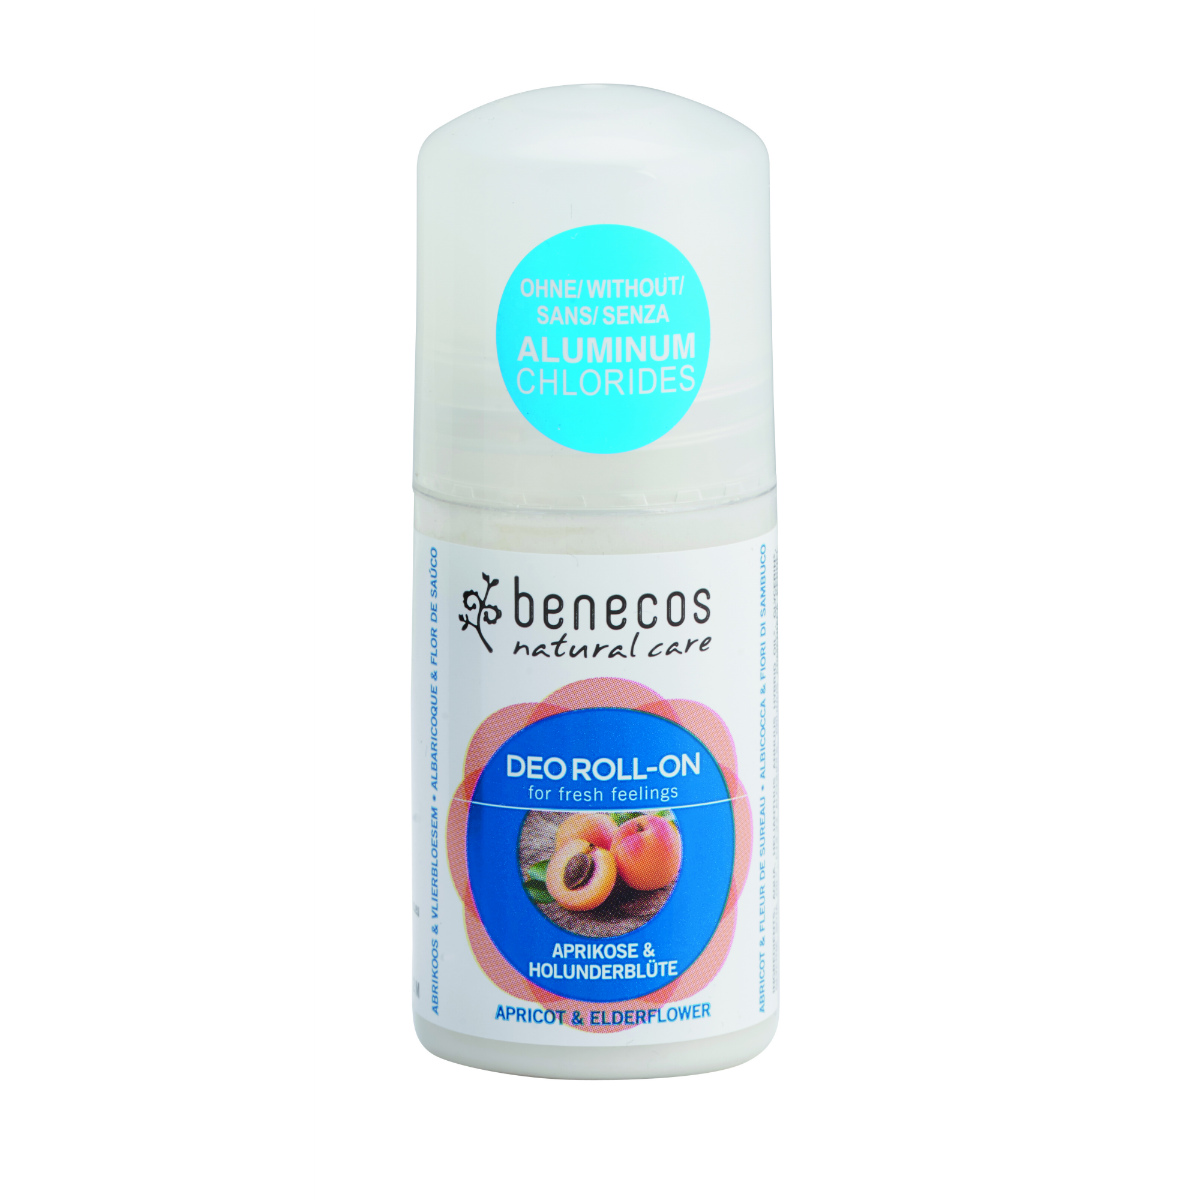 benecos Deo Roll-On Aprikose_Holunderblu¦ête apricot_elderflower hr